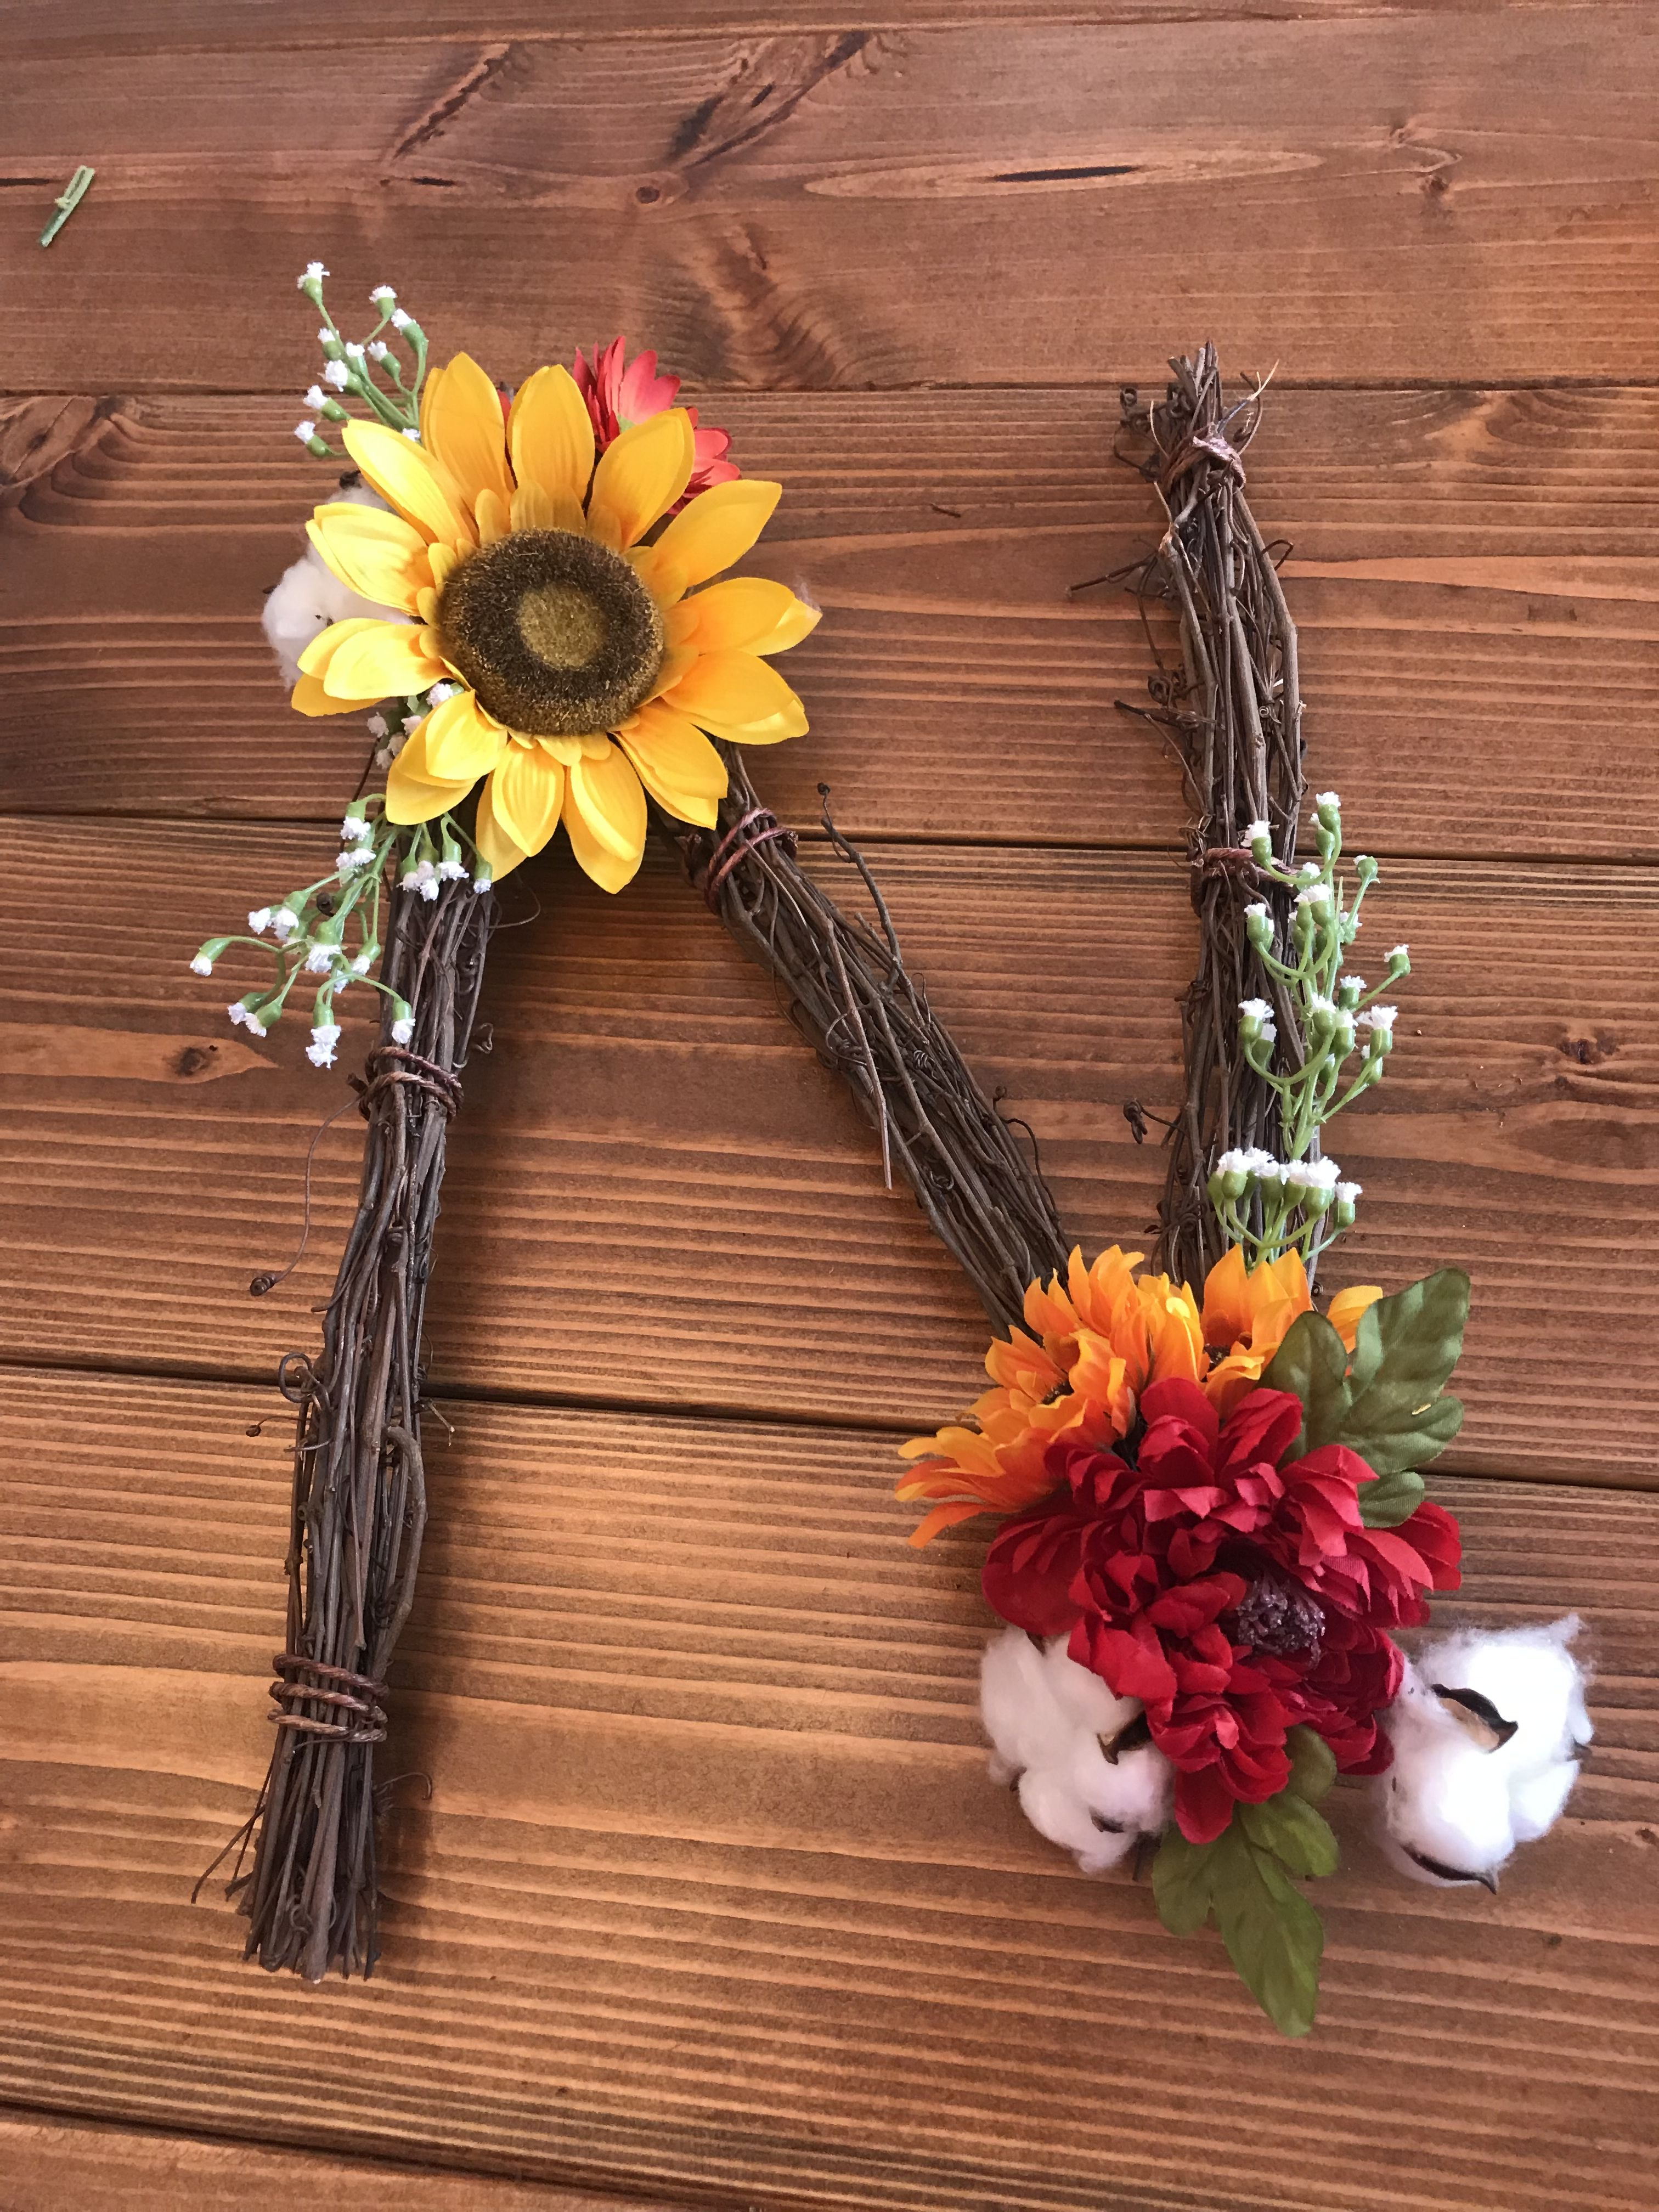 Diy Twig Letters For Nursery All Supplies From Michaels Stores 1 Bundle Of Twigs And Whatever Fake Flowers You Want Mak Fake Flowers Twig Art Creative Area